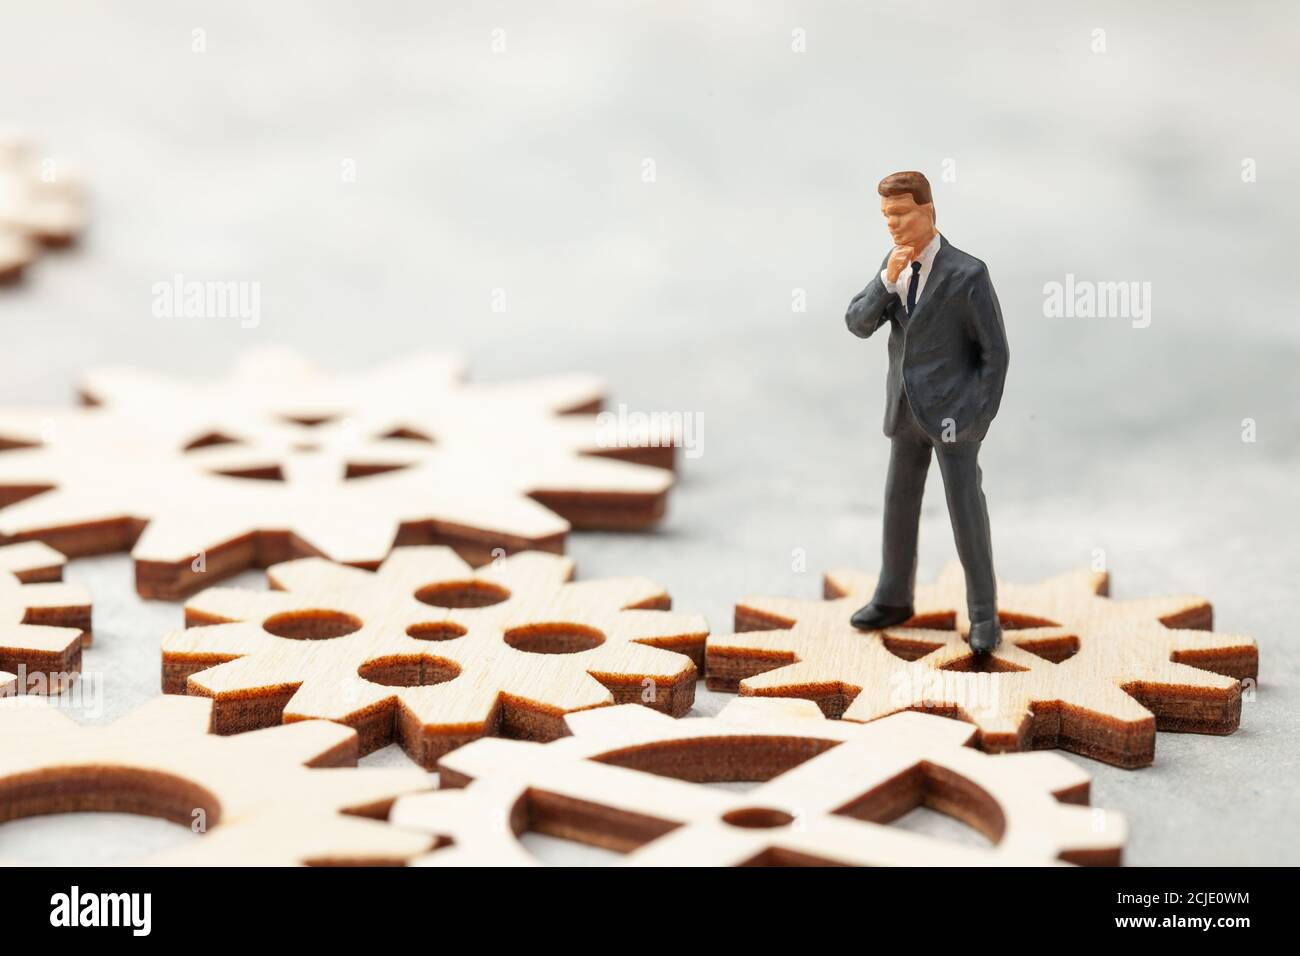 Business Analysis. Audit of the company. A businessman in a suit stands on gears as a symbol of business processes in the company. Stock Photo